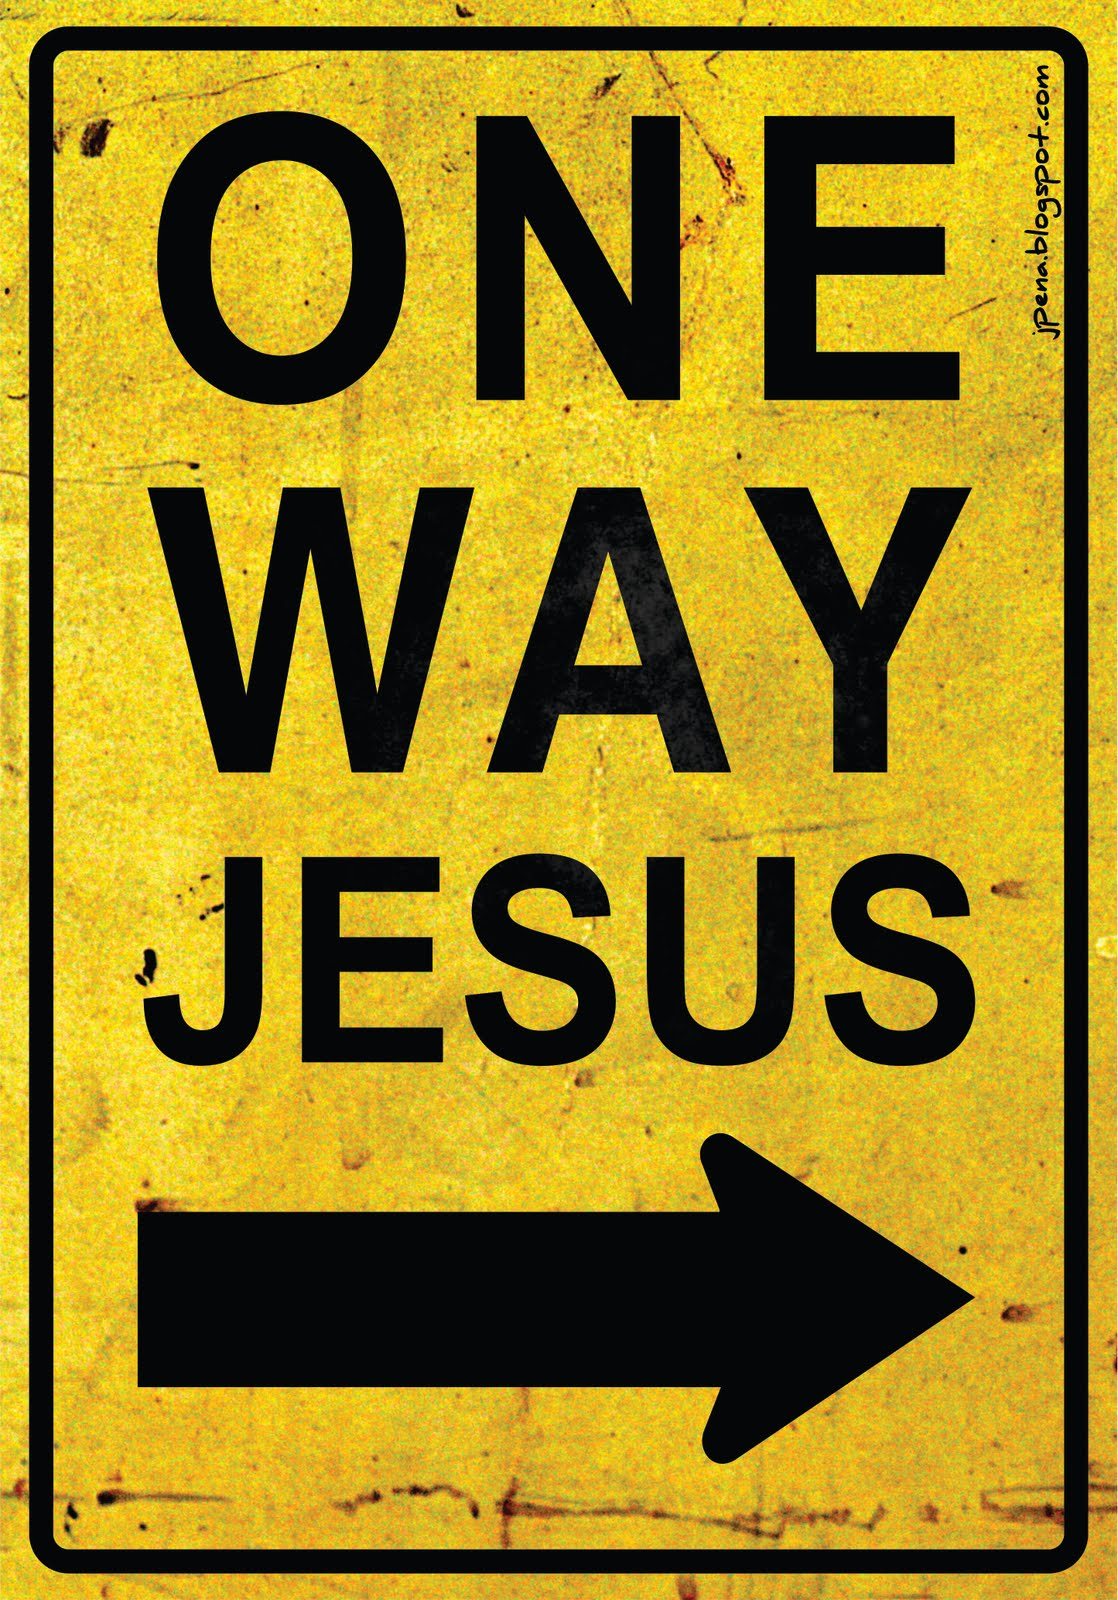 About – The Narrow Way